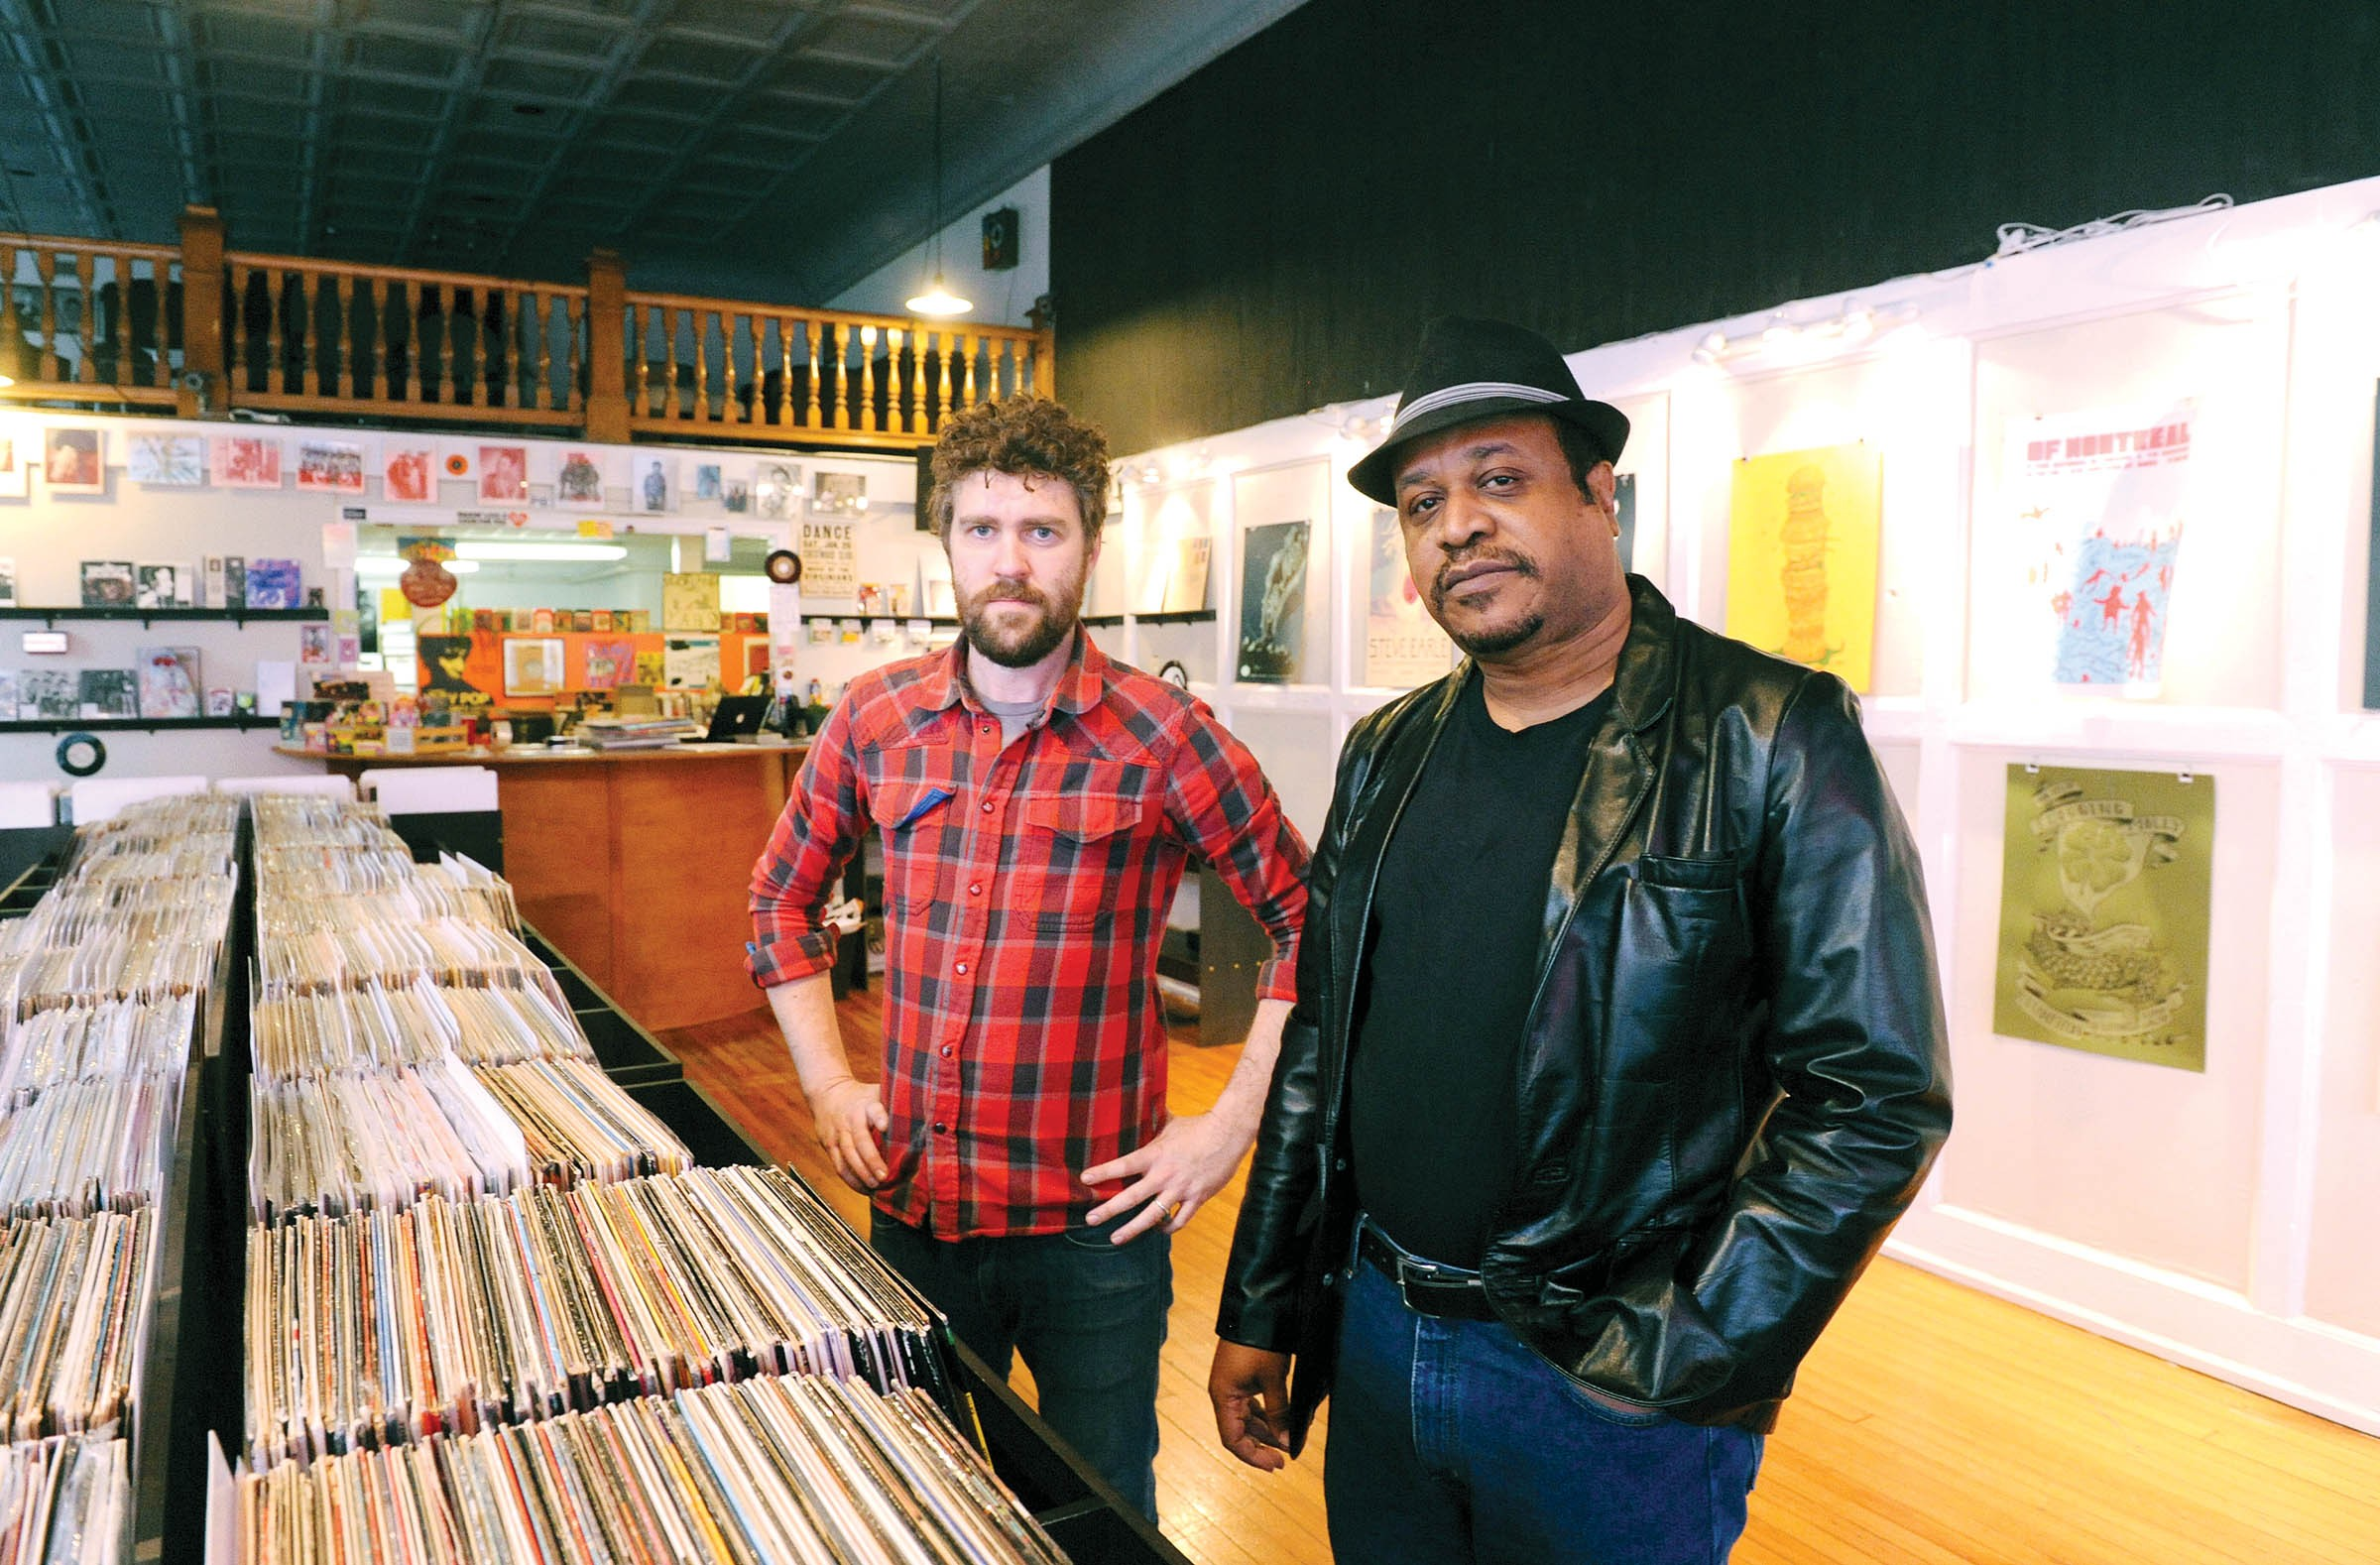 """Steady Sounds co-owner Marty Key, at left, couldn't believe his ear holes when he heard the bedroom funk demos saved up for the last 30 years by local musician Max Monroe. Together, Steady Sounds and the Washington-based People's Potential Unlimited have released """"The Trash Company: the Earle Hotel Tapes: 1979 – 1993"""" (inset). The cover was designed by local art director Doug Dobey. - SCOTT ELMQUIST"""